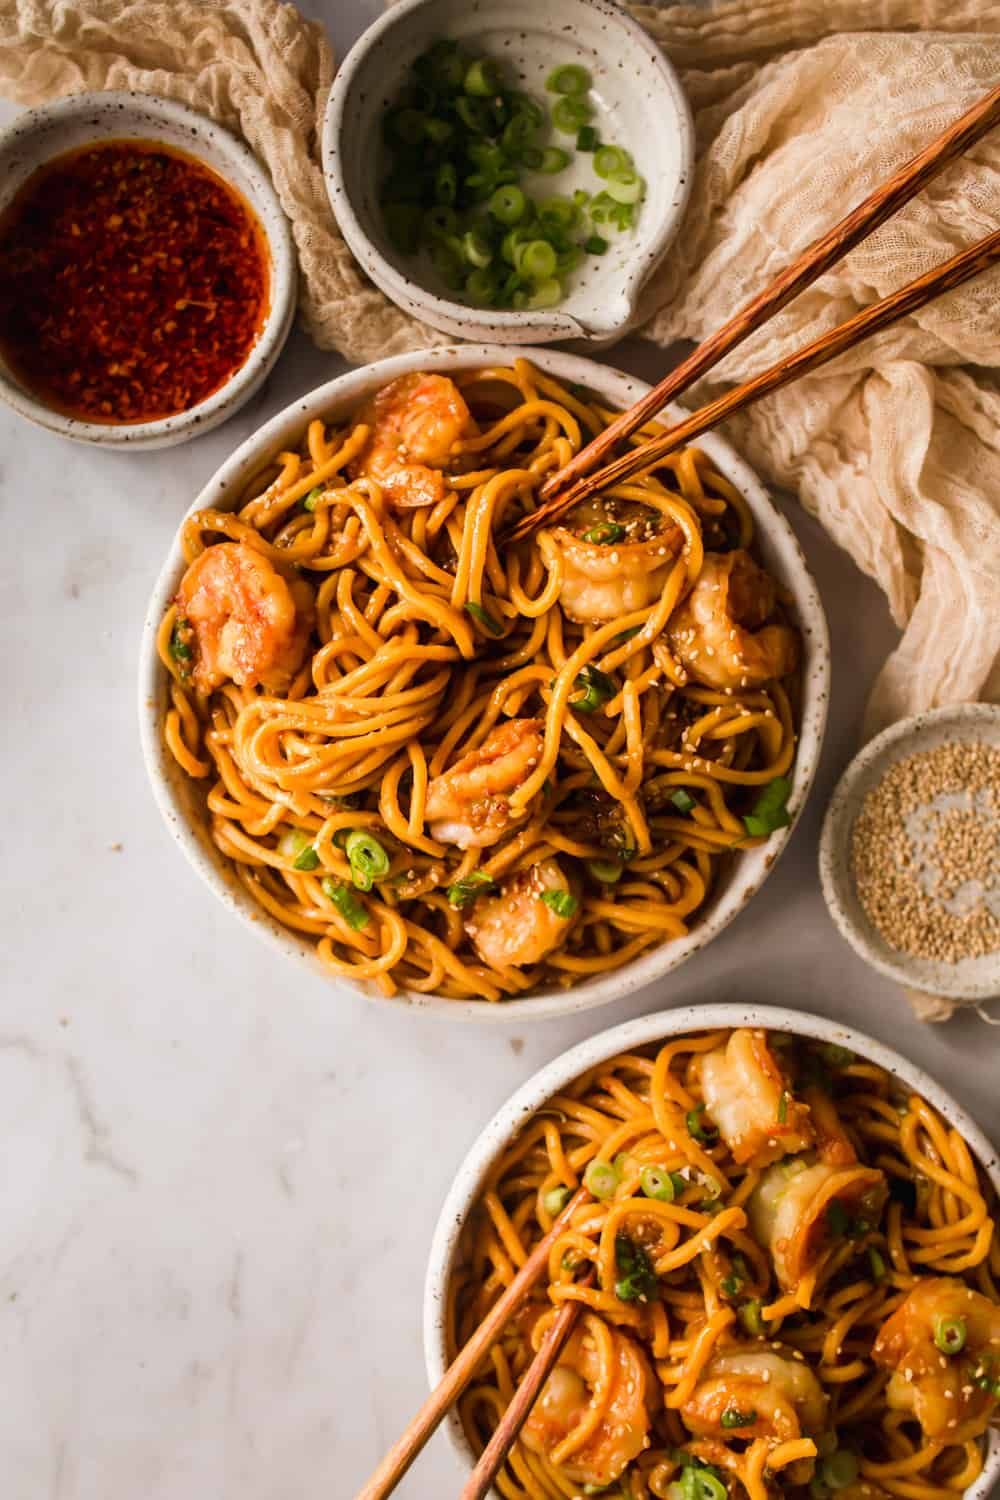 2 white bowls with yellow thin egg noodles, shrimp, and chopsticks. Small white bowls with green onions, oil, and sesame seeds on the side.